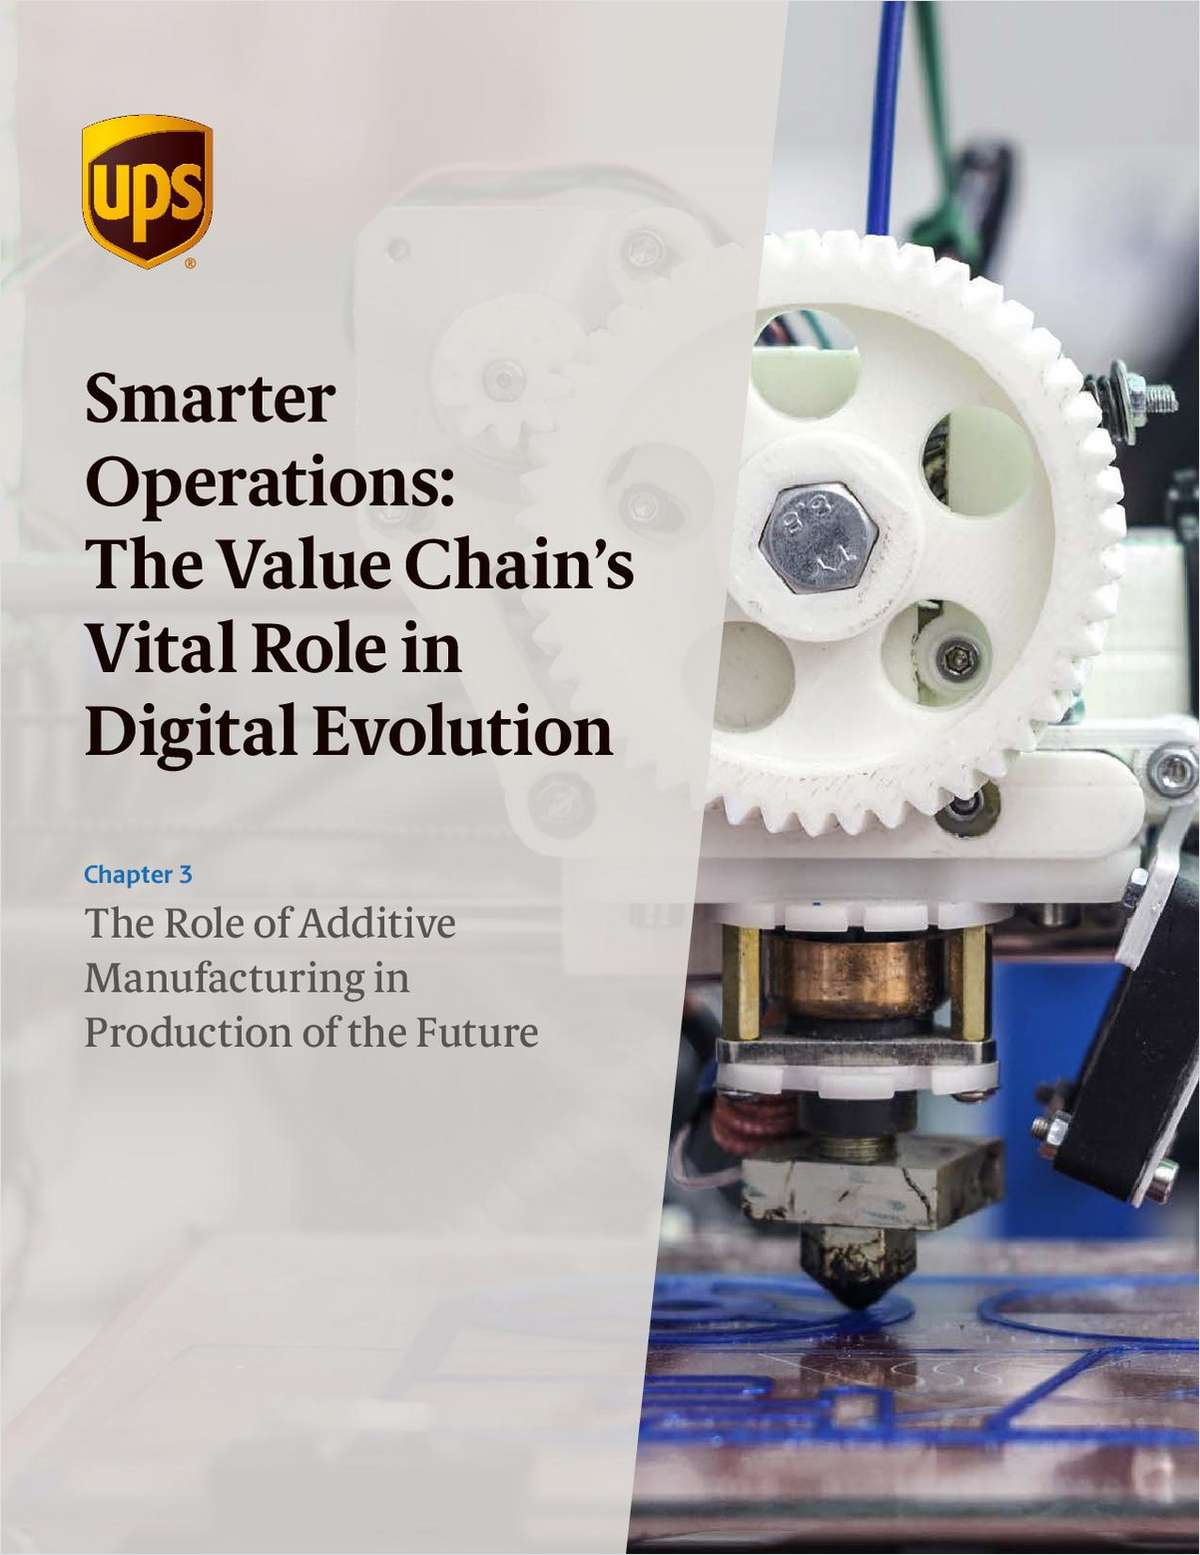 The Role of Additive Manufacturing in Production of the Future